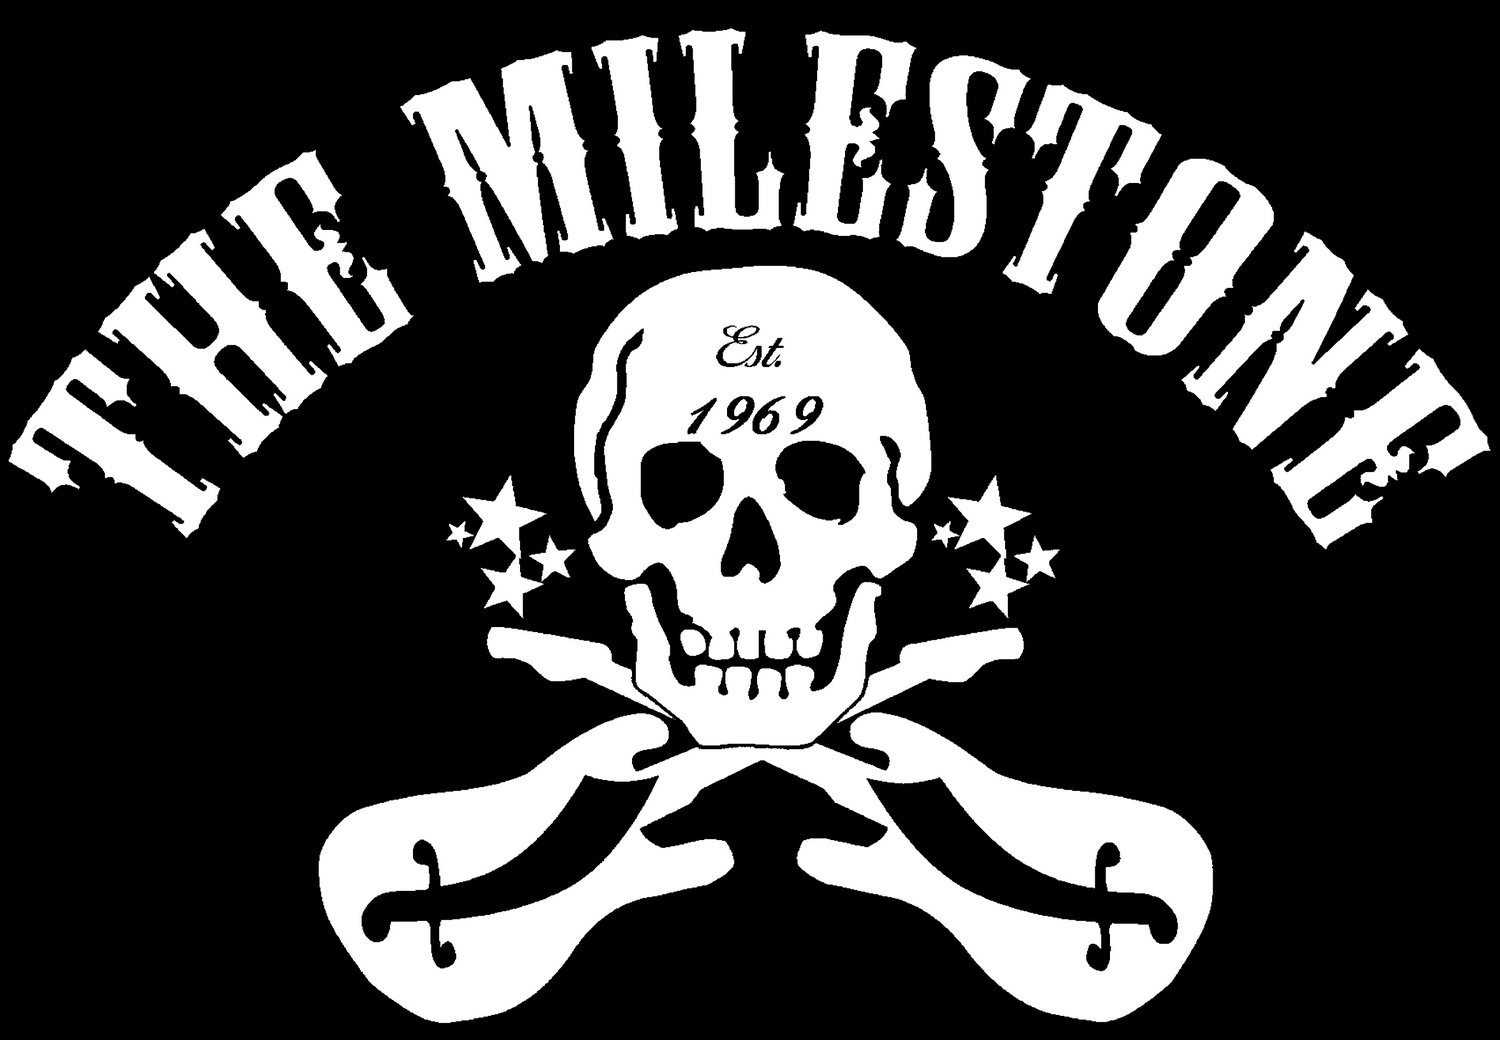 The Milestone Club